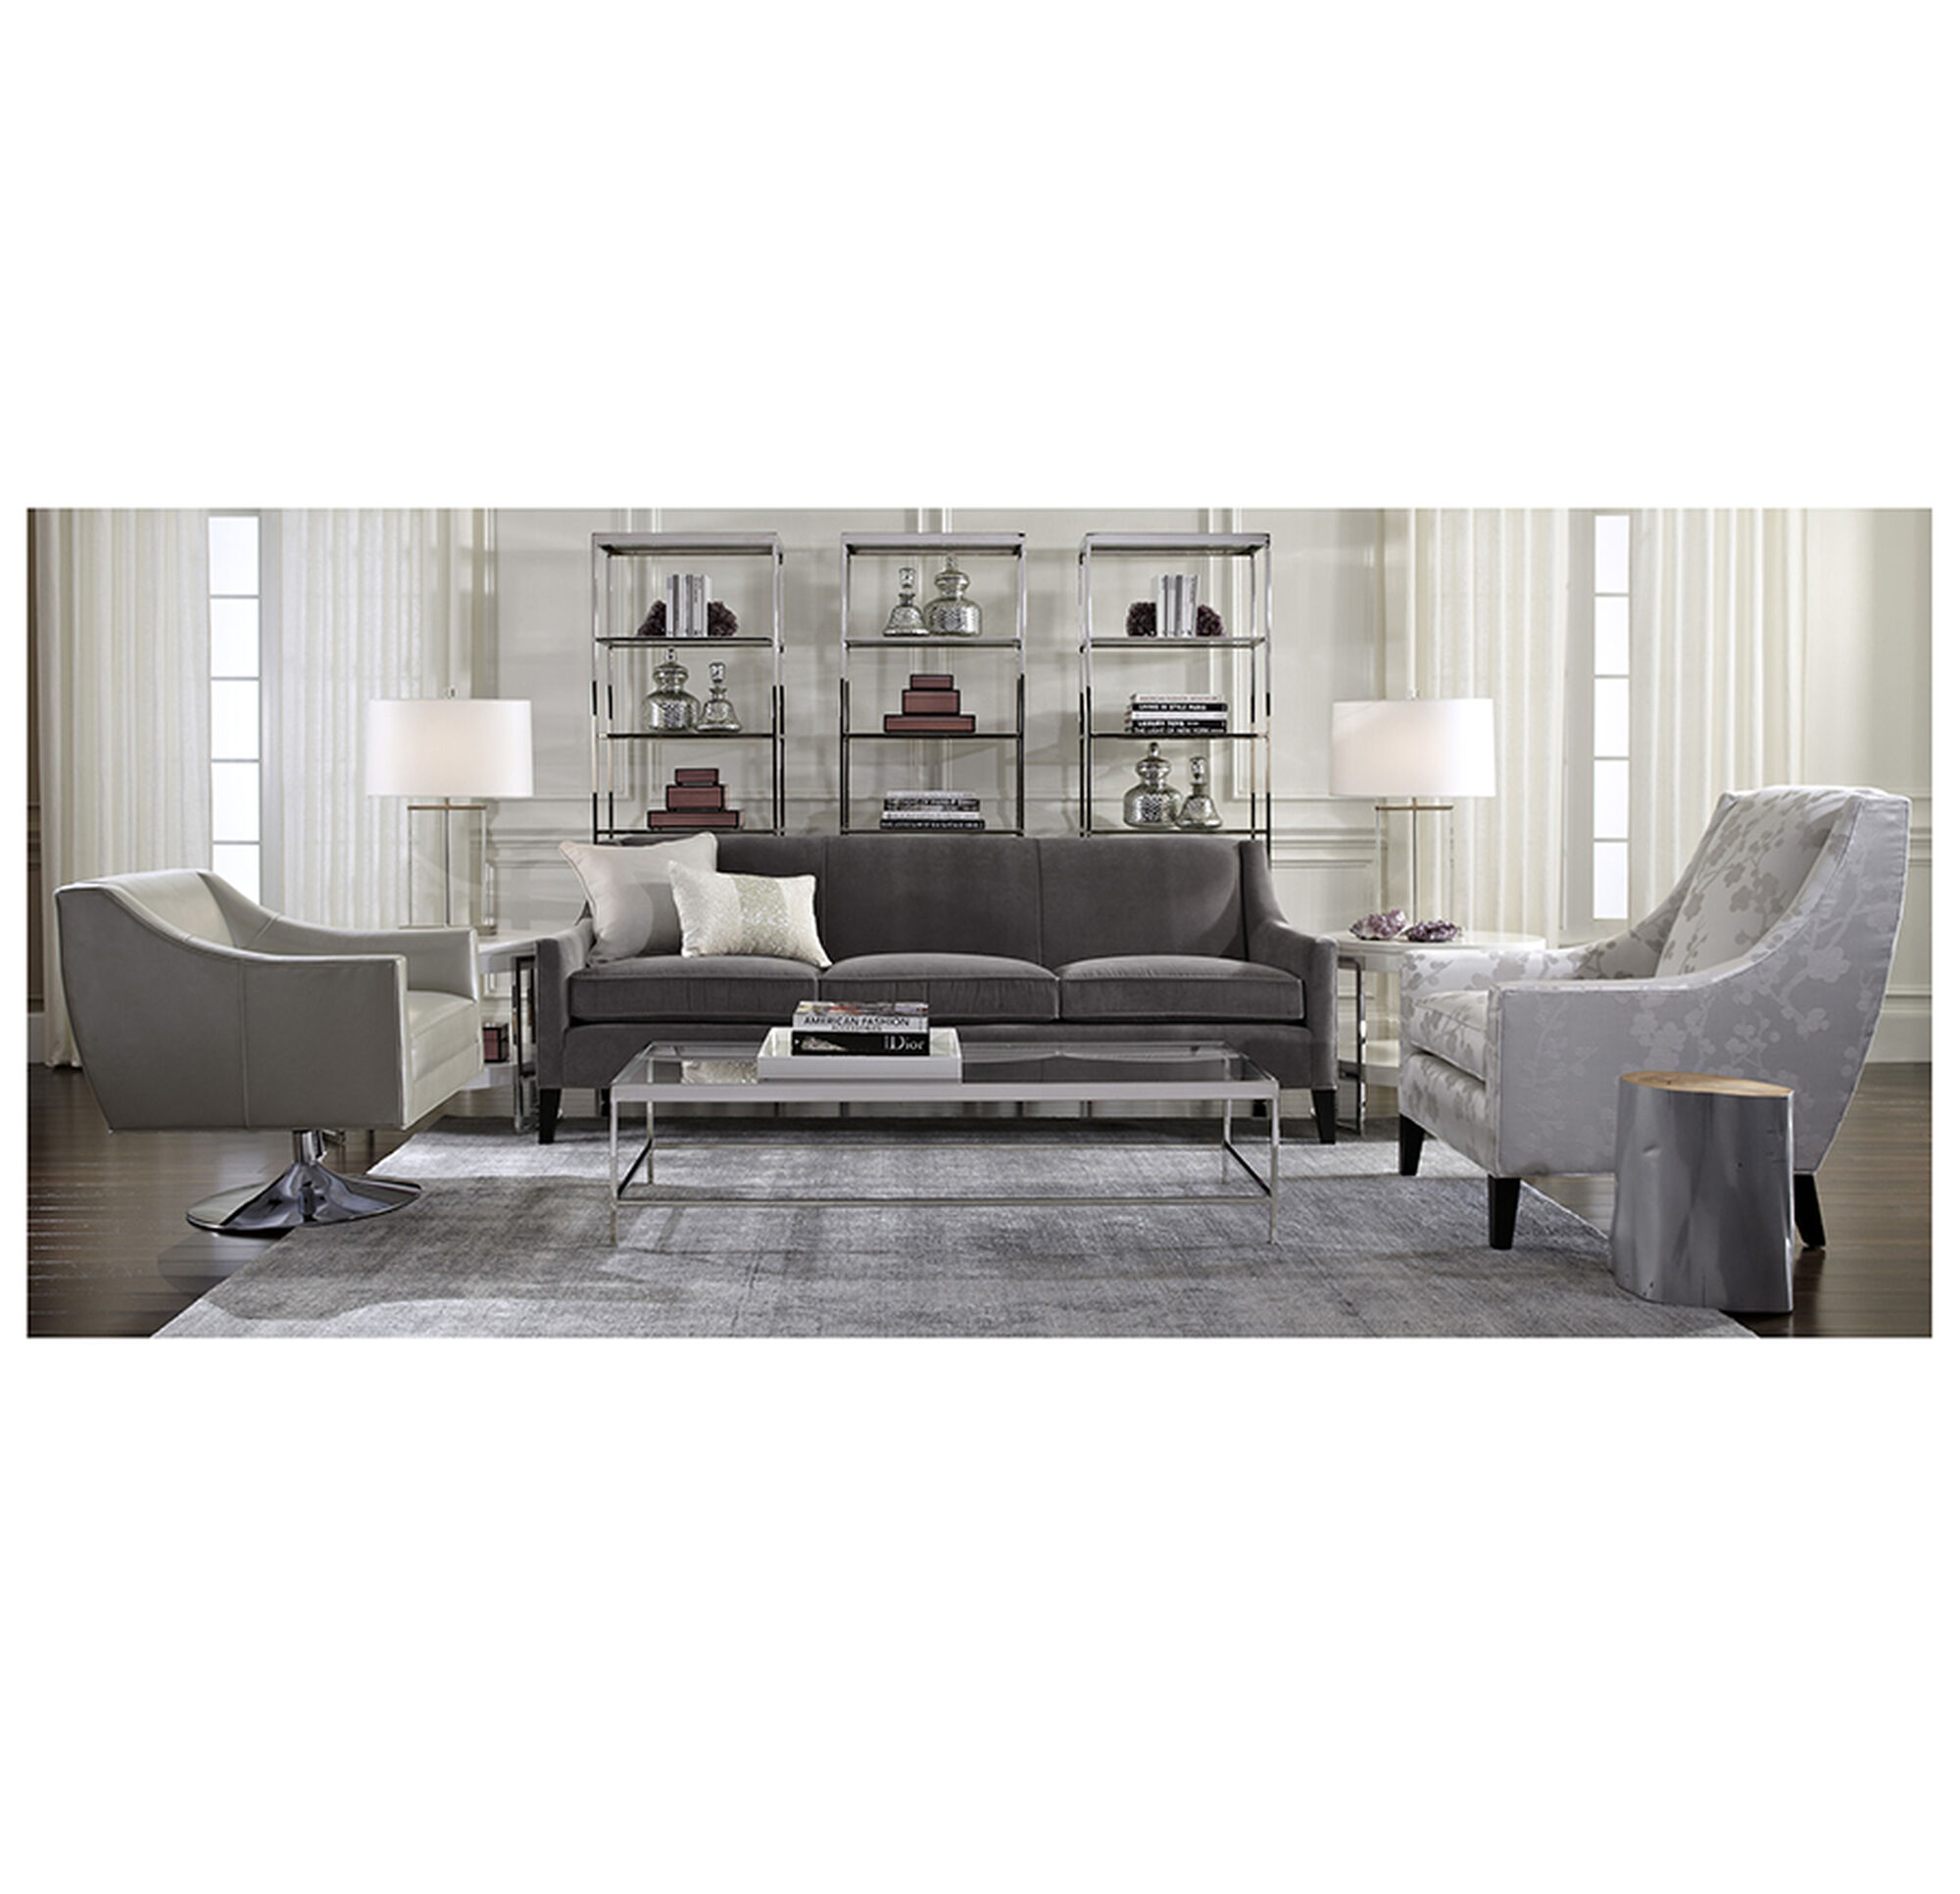 Leather Swivel Chairs For Living Room Cara Leather Swivel Chair